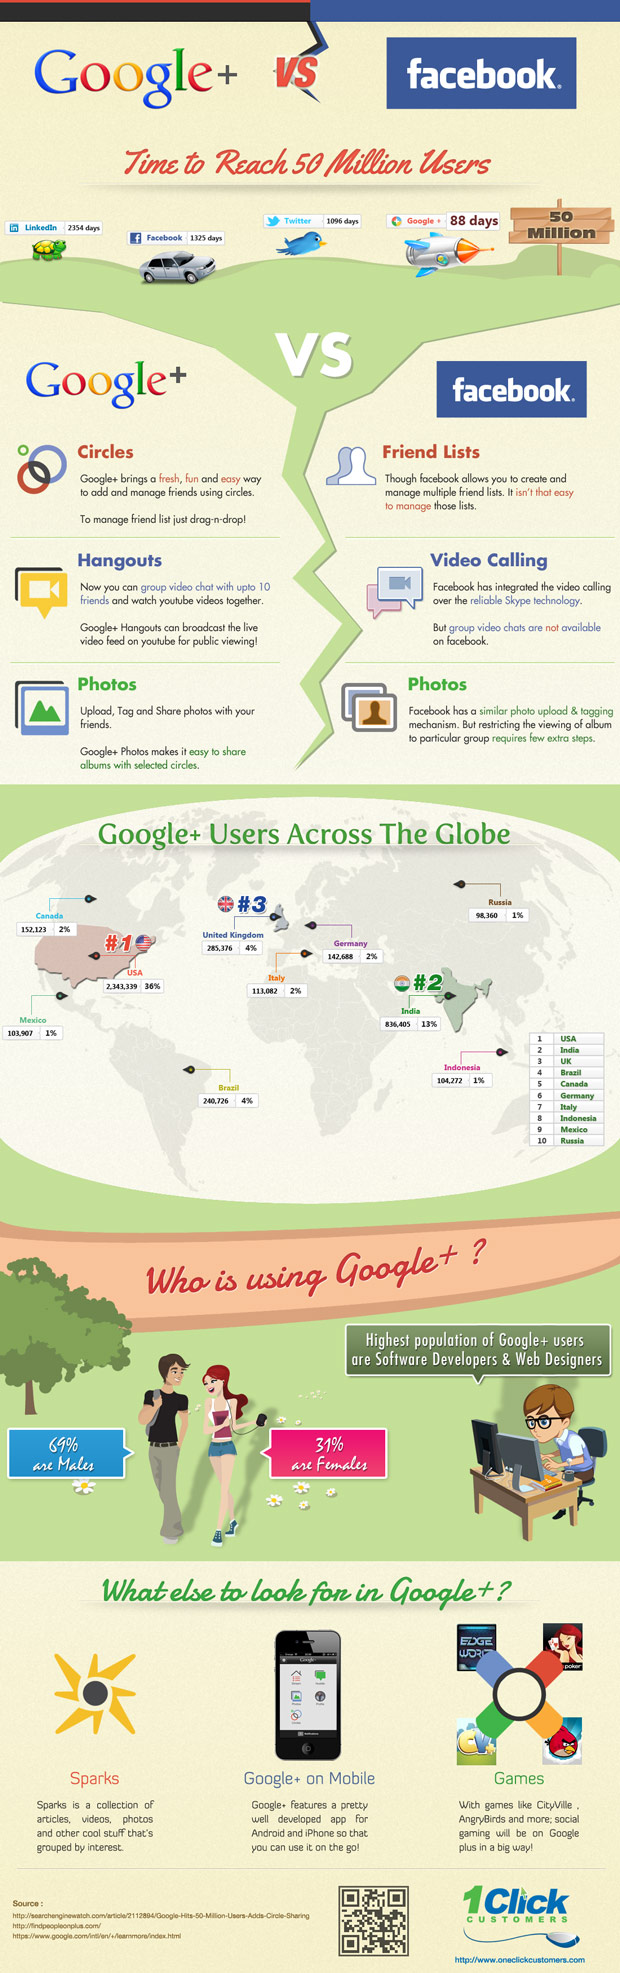 Google+ vs Facebook Infographic